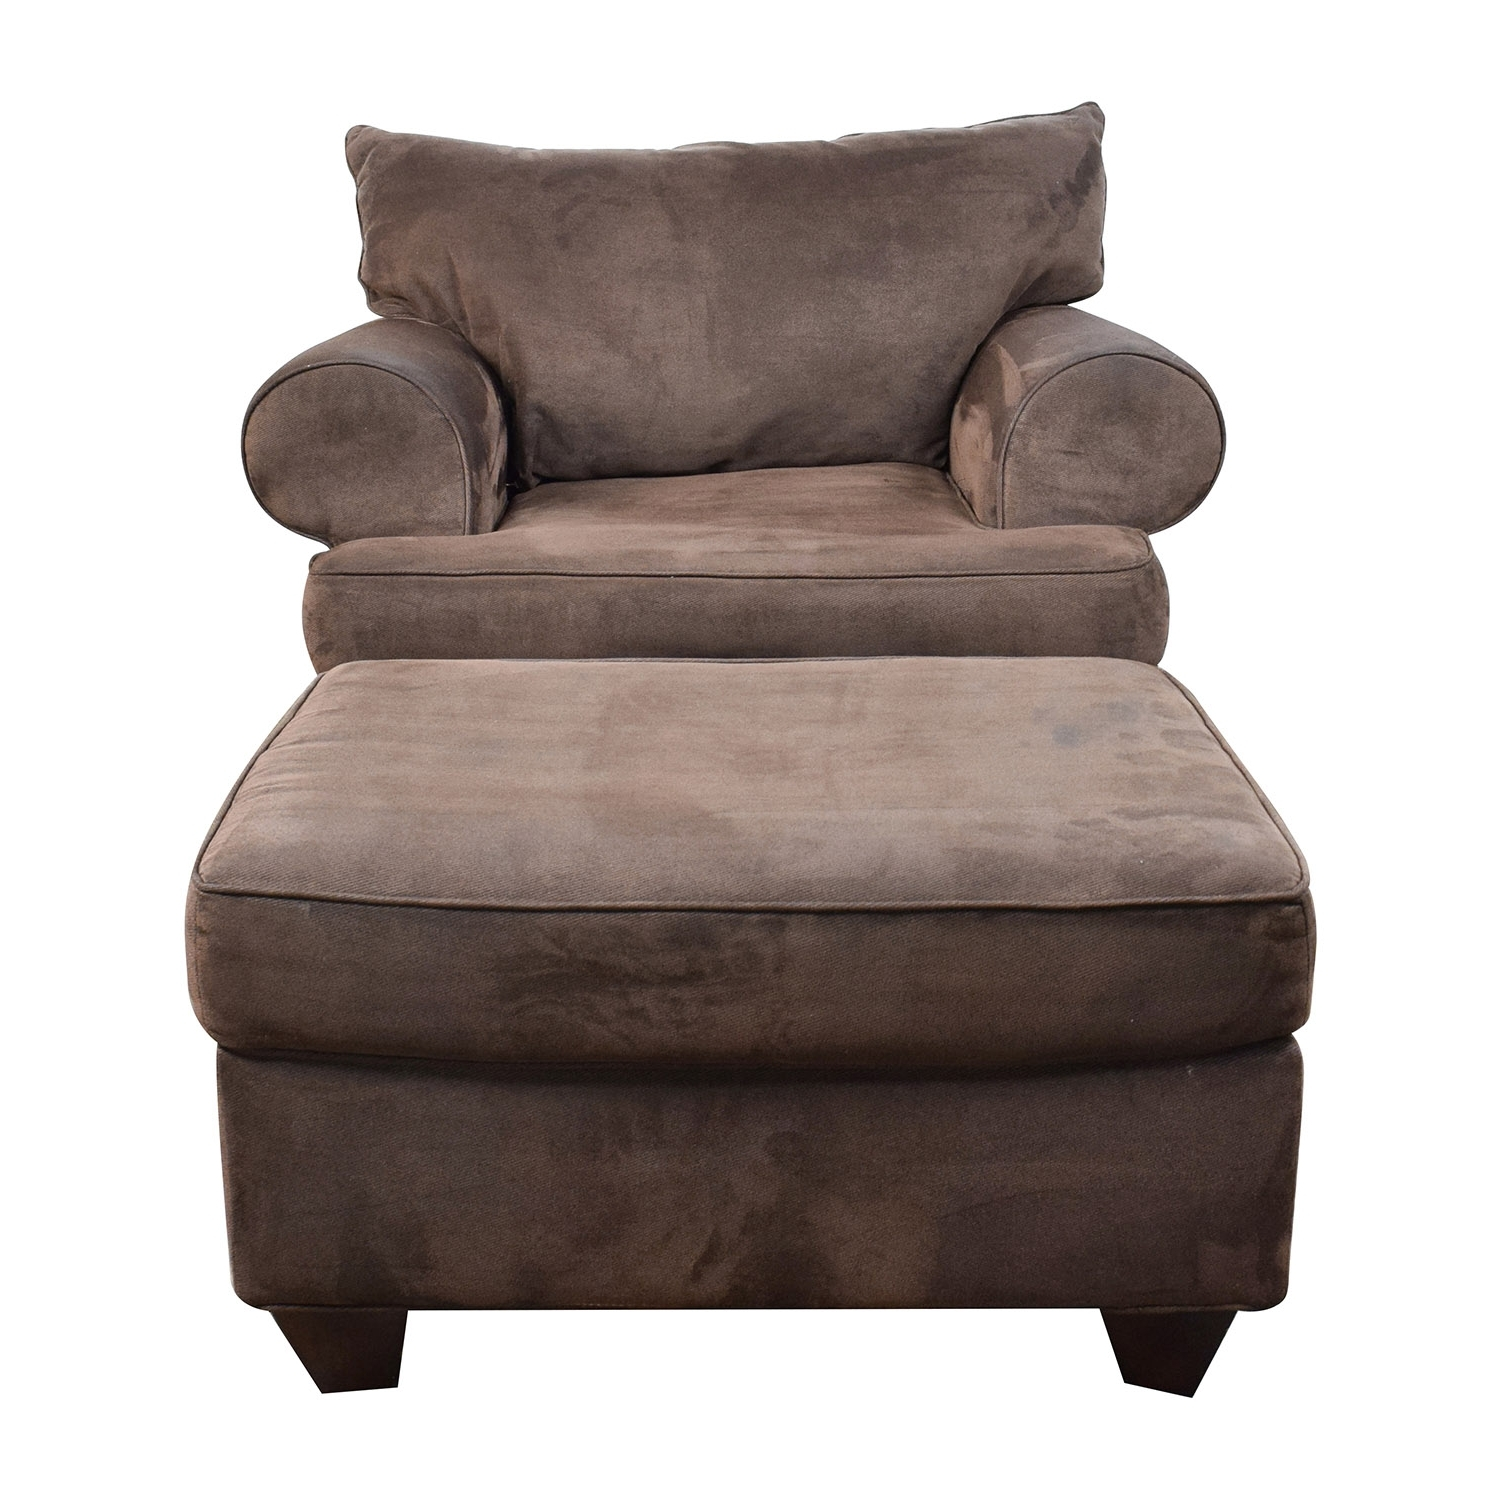 [%67% Off – Dark Brown Sofa Chair With Ottoman / Chairs In Most Recently Released Brown Sofa Chairs|Brown Sofa Chairs With Regard To 2018 67% Off – Dark Brown Sofa Chair With Ottoman / Chairs|Newest Brown Sofa Chairs Intended For 67% Off – Dark Brown Sofa Chair With Ottoman / Chairs|Trendy 67% Off – Dark Brown Sofa Chair With Ottoman / Chairs With Brown Sofa Chairs%] (View 4 of 20)